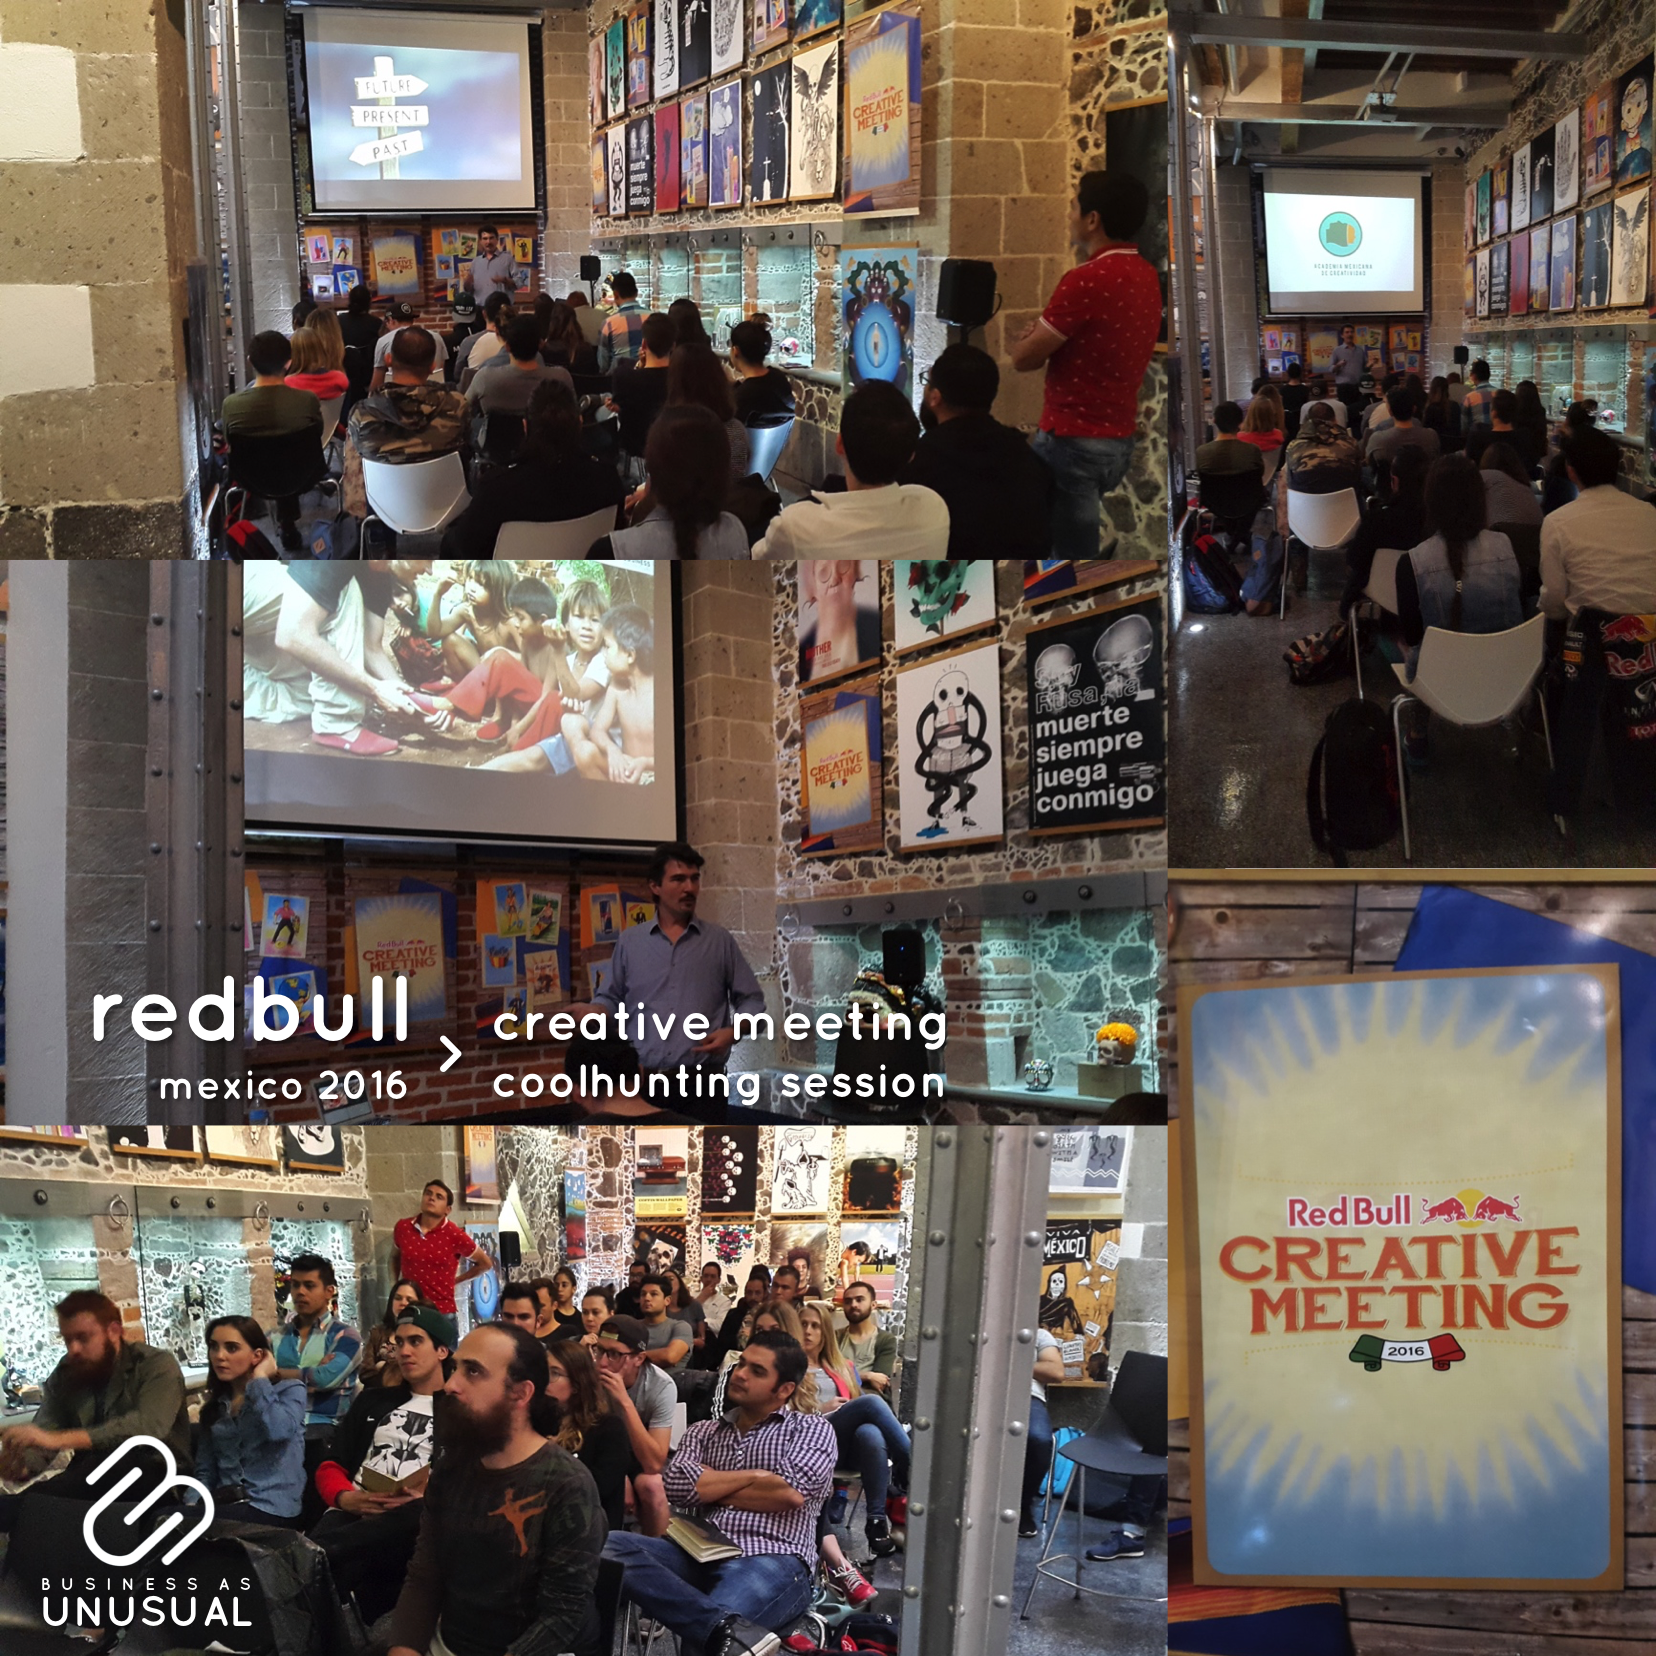 Red Bull Creative Meeting - Coolhunting Session